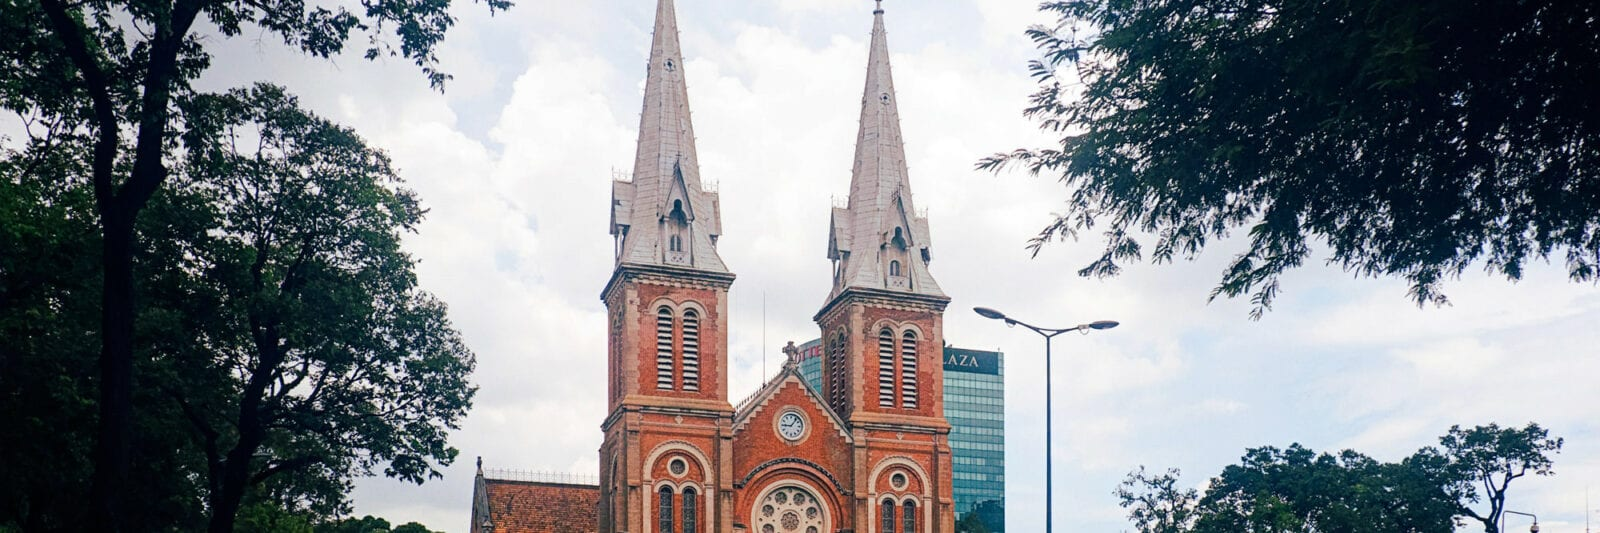 Image of the Notre-Dame Cathedral Basilica of Saigon in Ho Chi Minh City street view